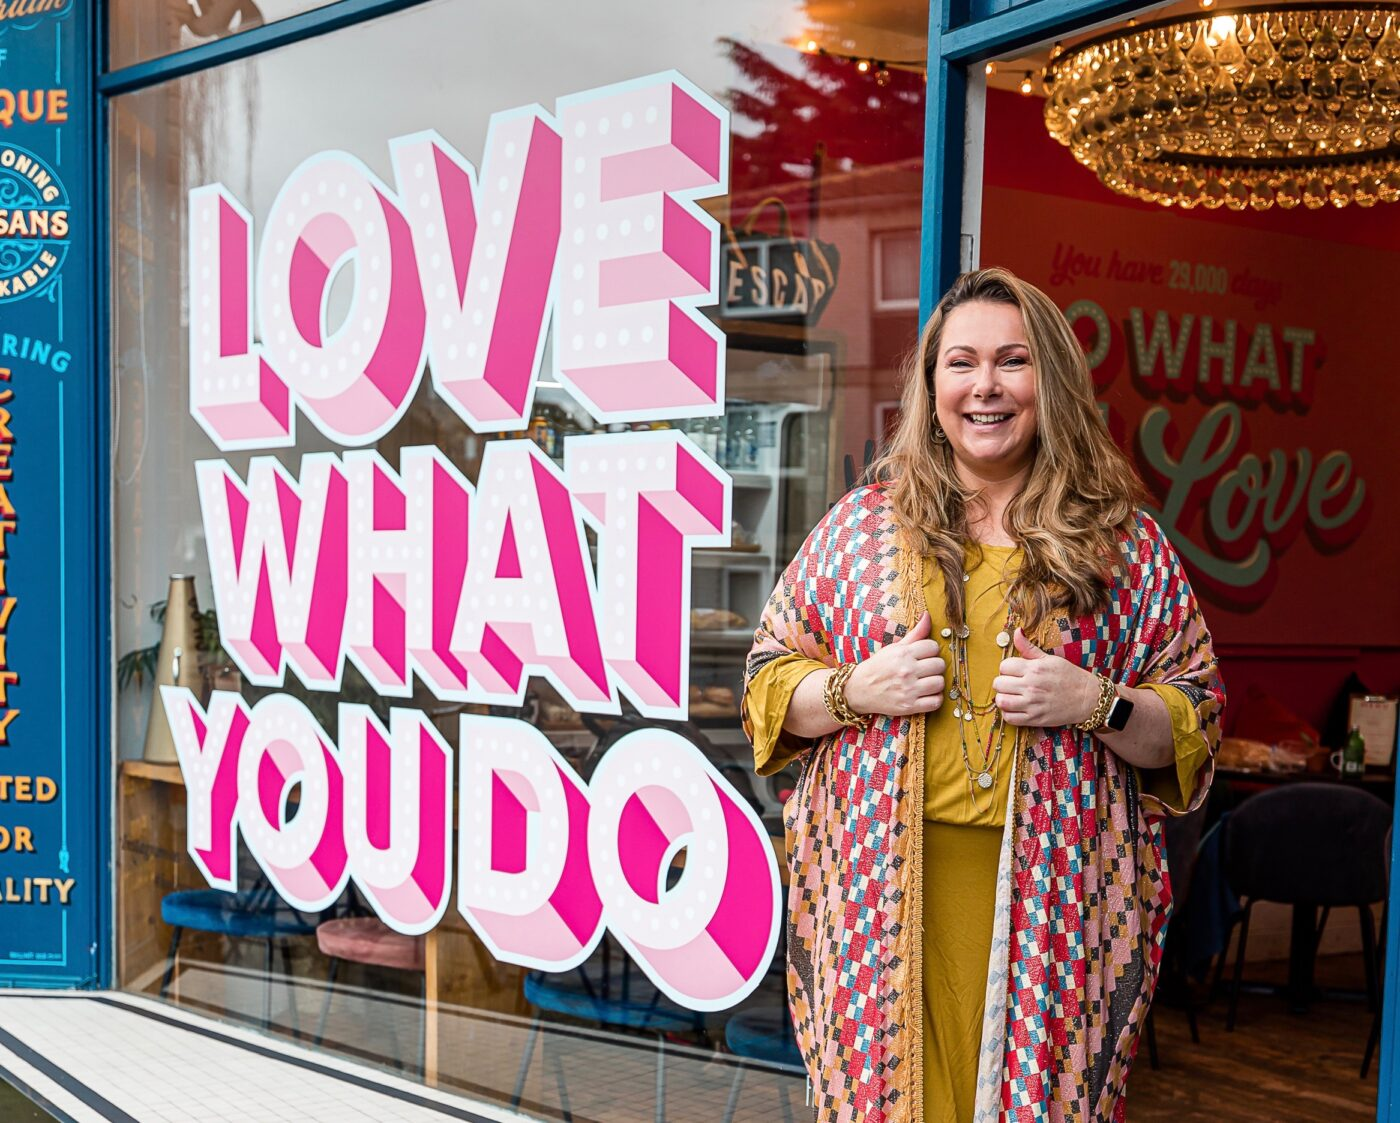 Holly Tucker MBE Love What You Do window